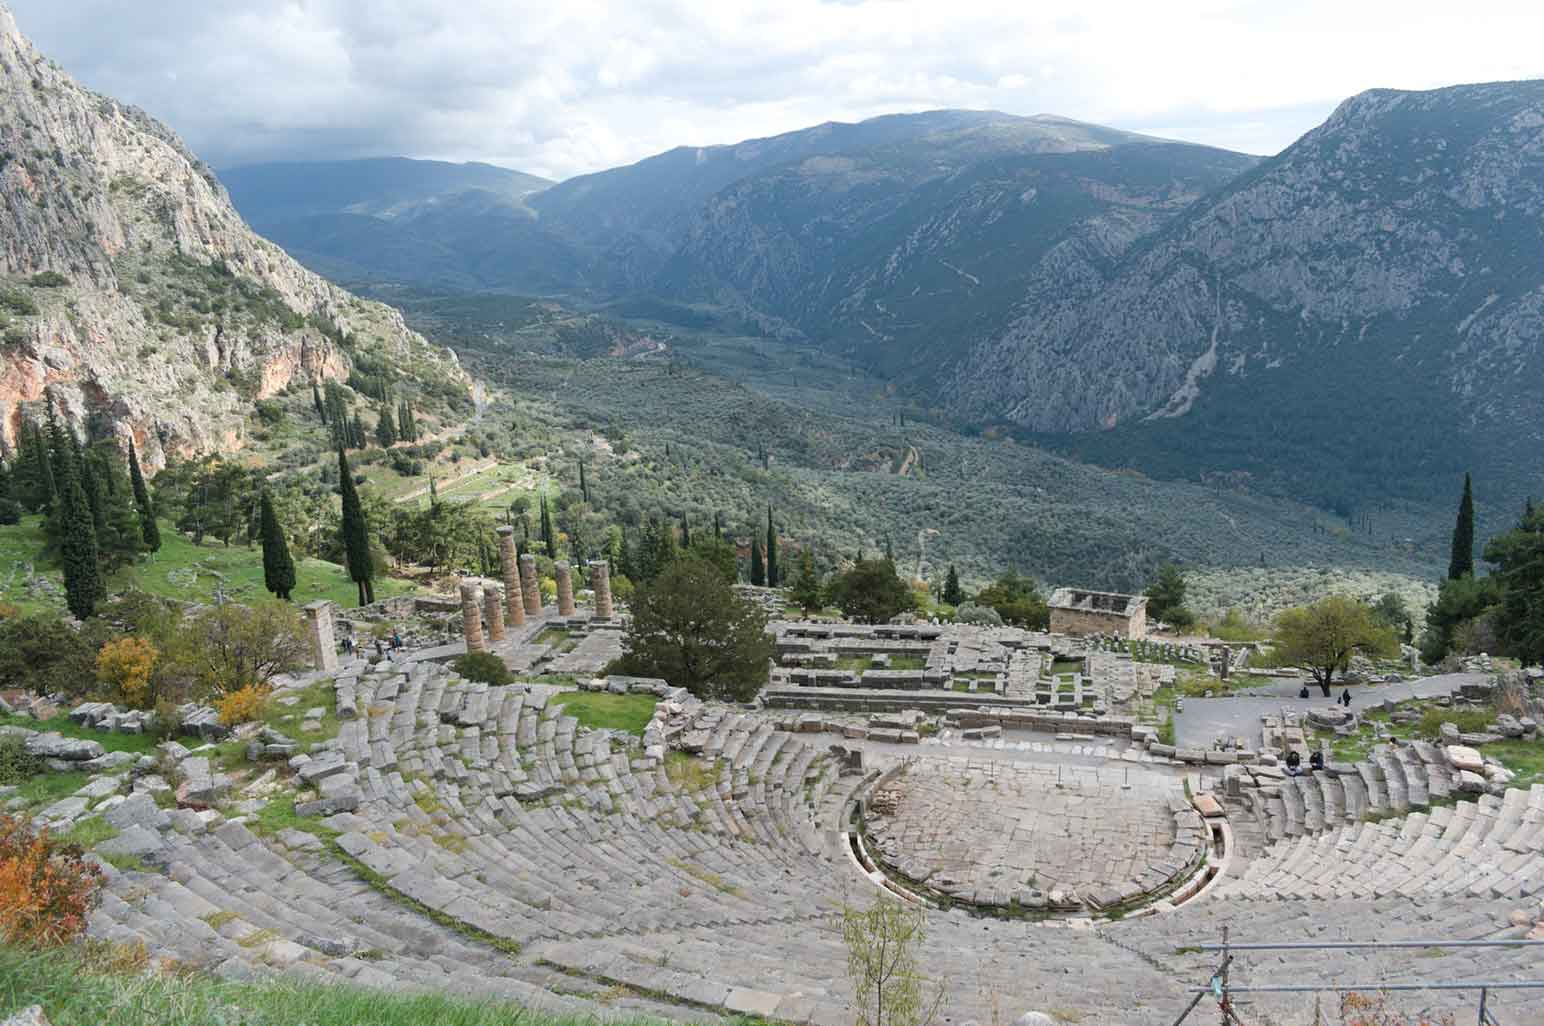 Discover Greece: Top 10 Places You Need to Visit in Greece - Delphi